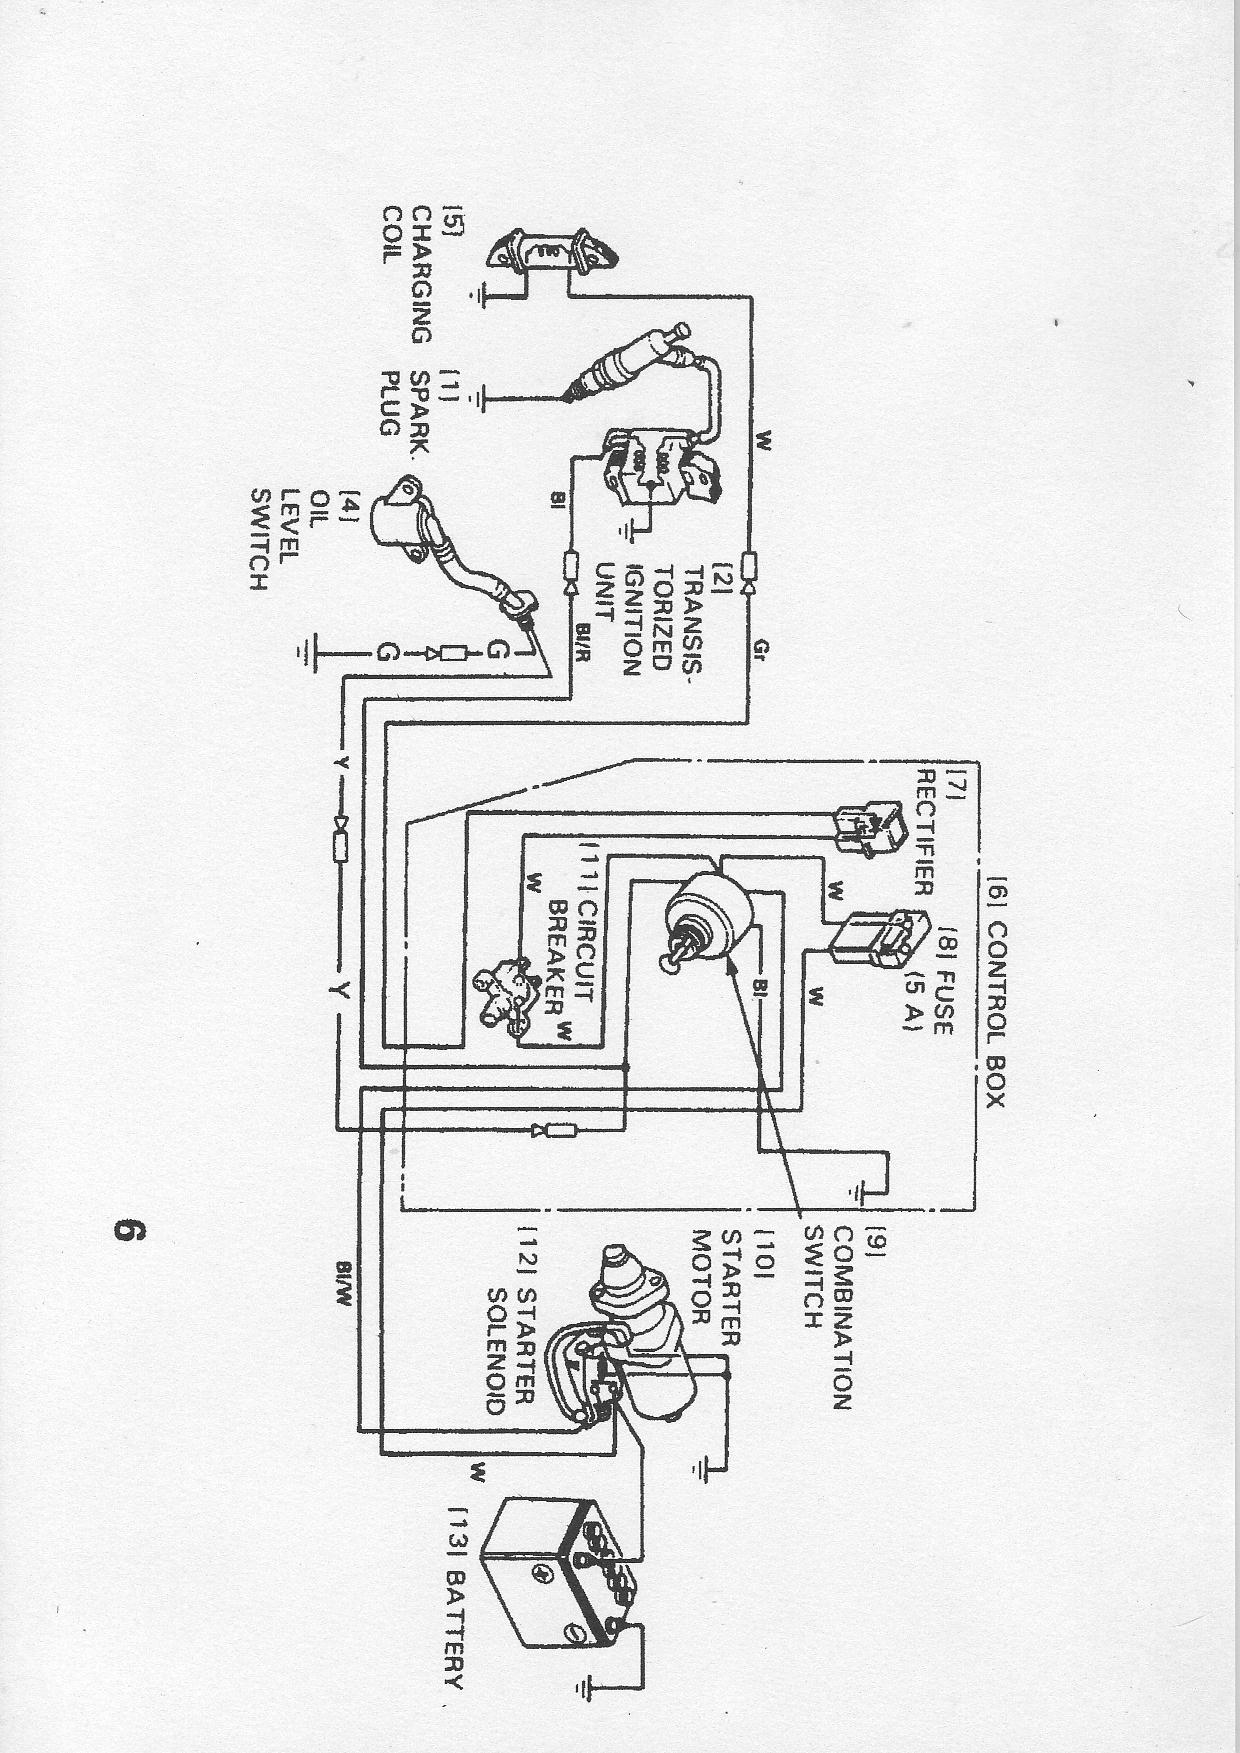 Honda 3wire Ignition Coil Wiring Diagram Gx390